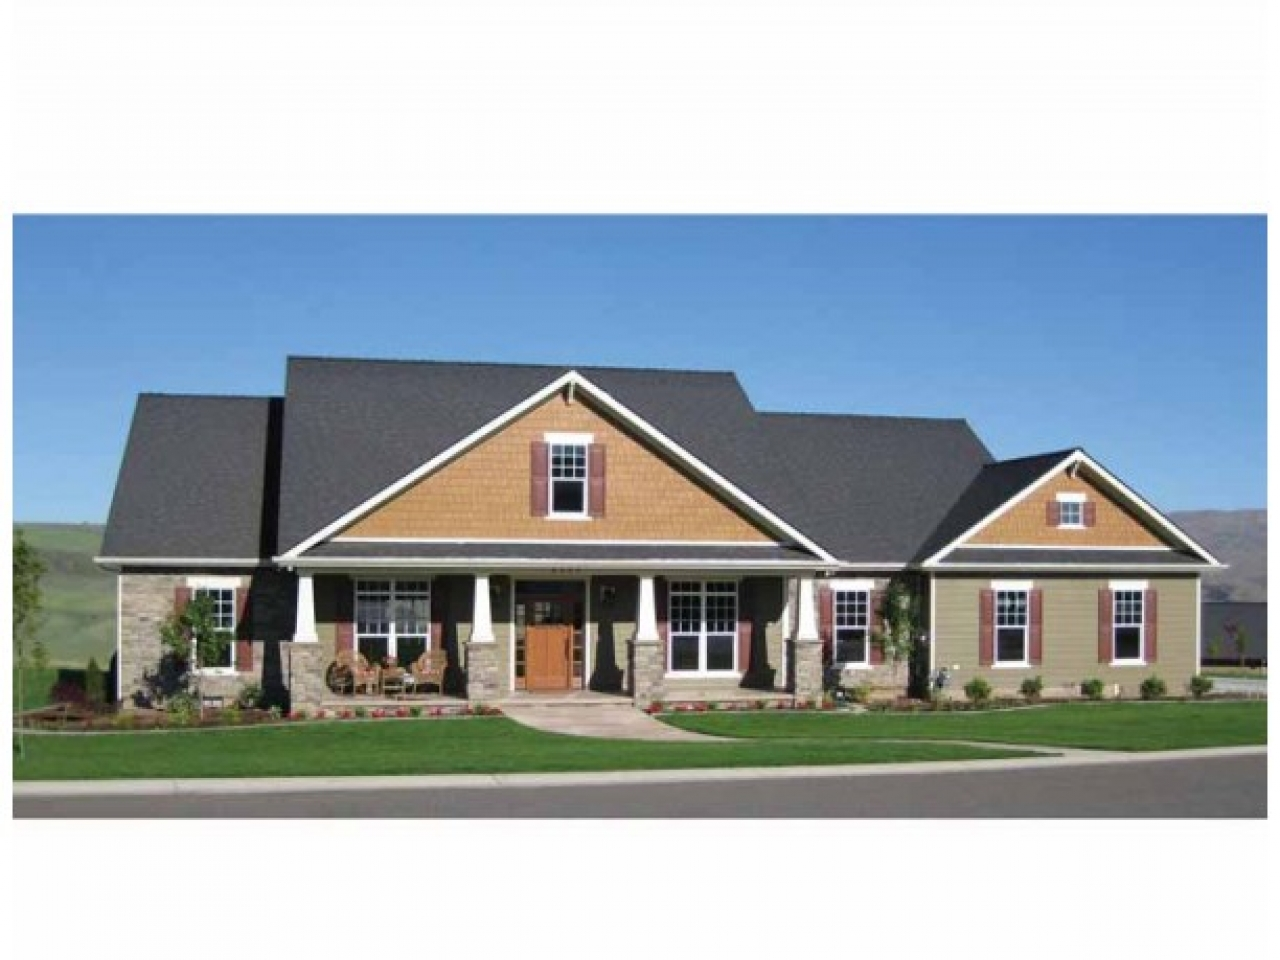 House plans ranch style home rectangular house plans ranch for Rectangular home plans